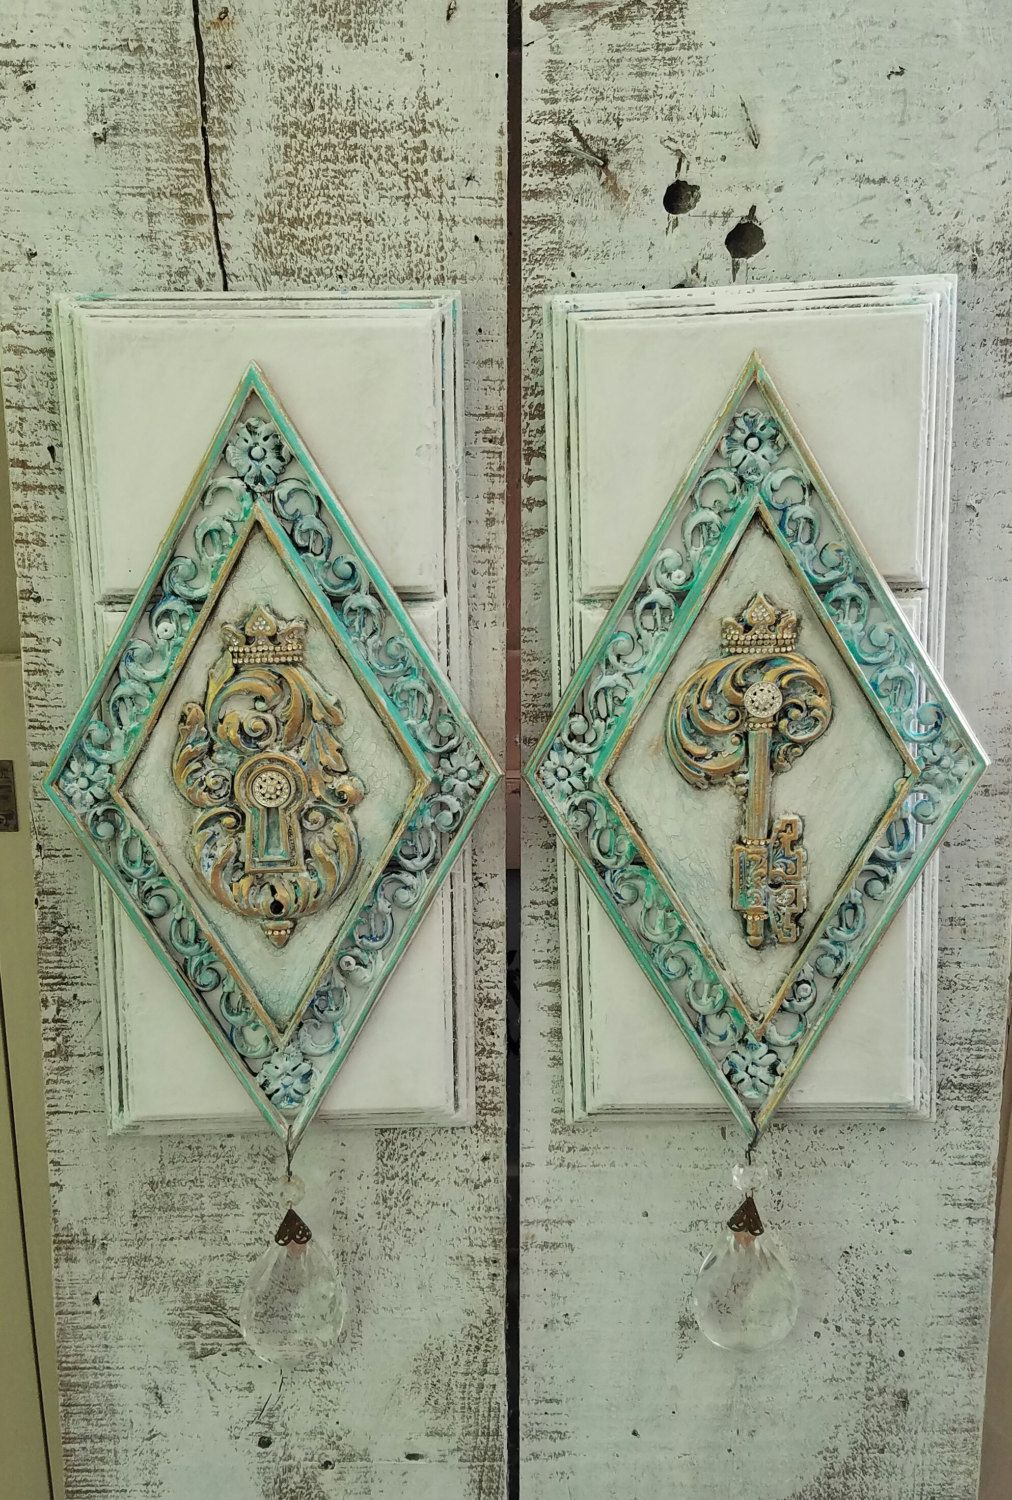 Pair Of Wall Plaque Wall Art Wall Decor Wall Hanging Blue White French Decor Distressed Hand Painted Home Decor Set Of 2 With Images Wall Art Decor Wall Plaques Wall Decor